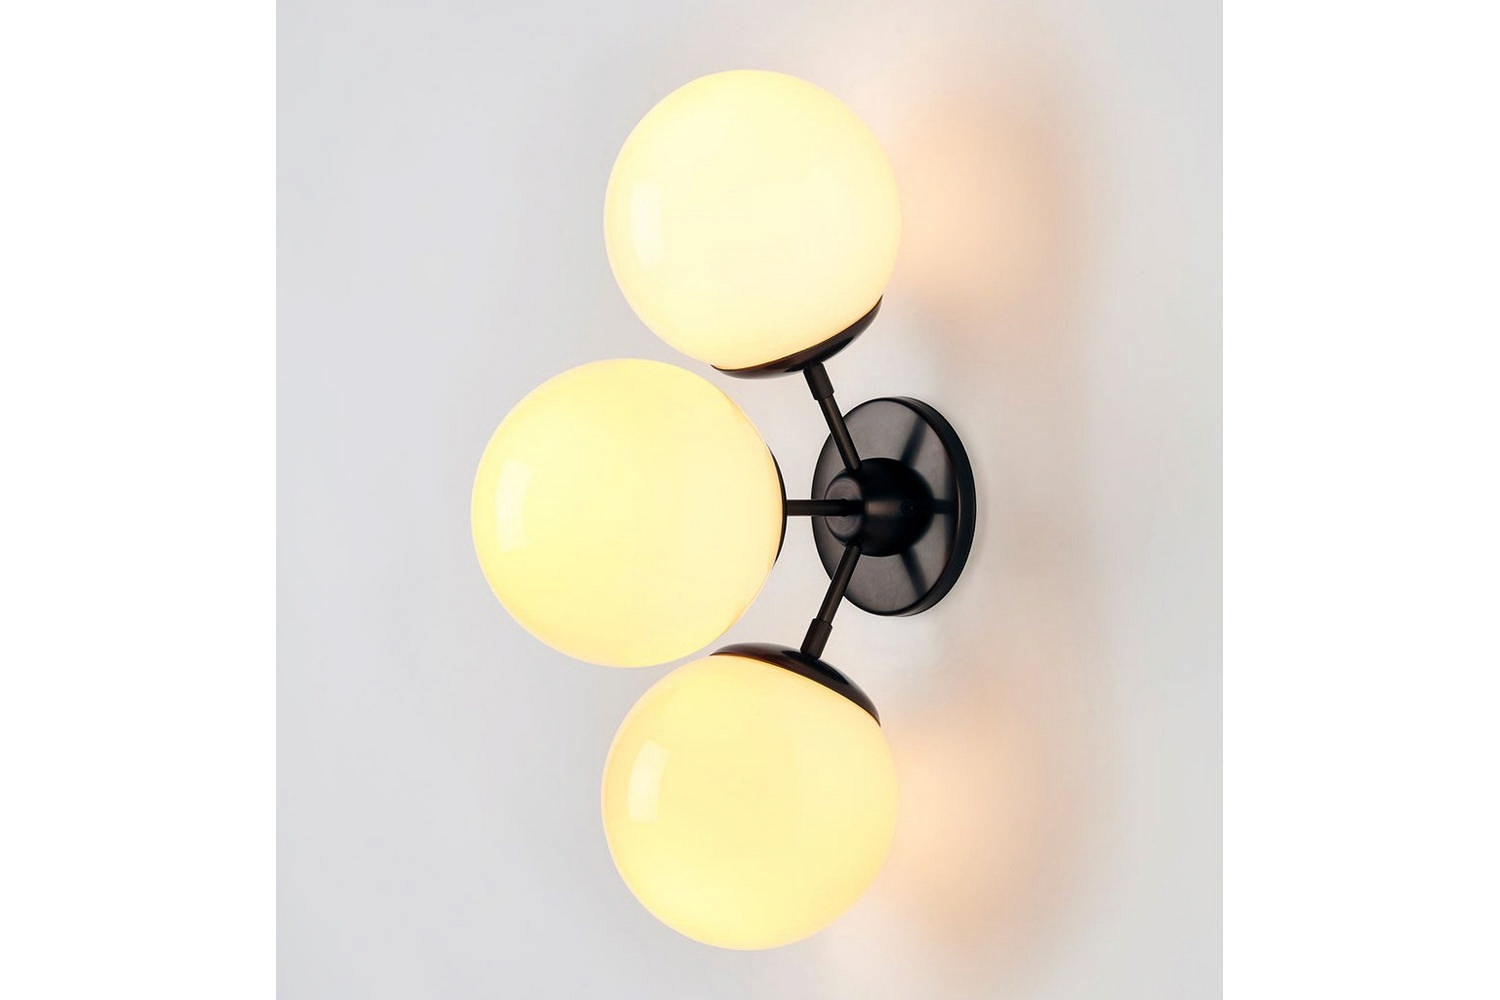 Modo Sconce - 3 Globes Wall Lamp by Jason Miller for Roll & Hill